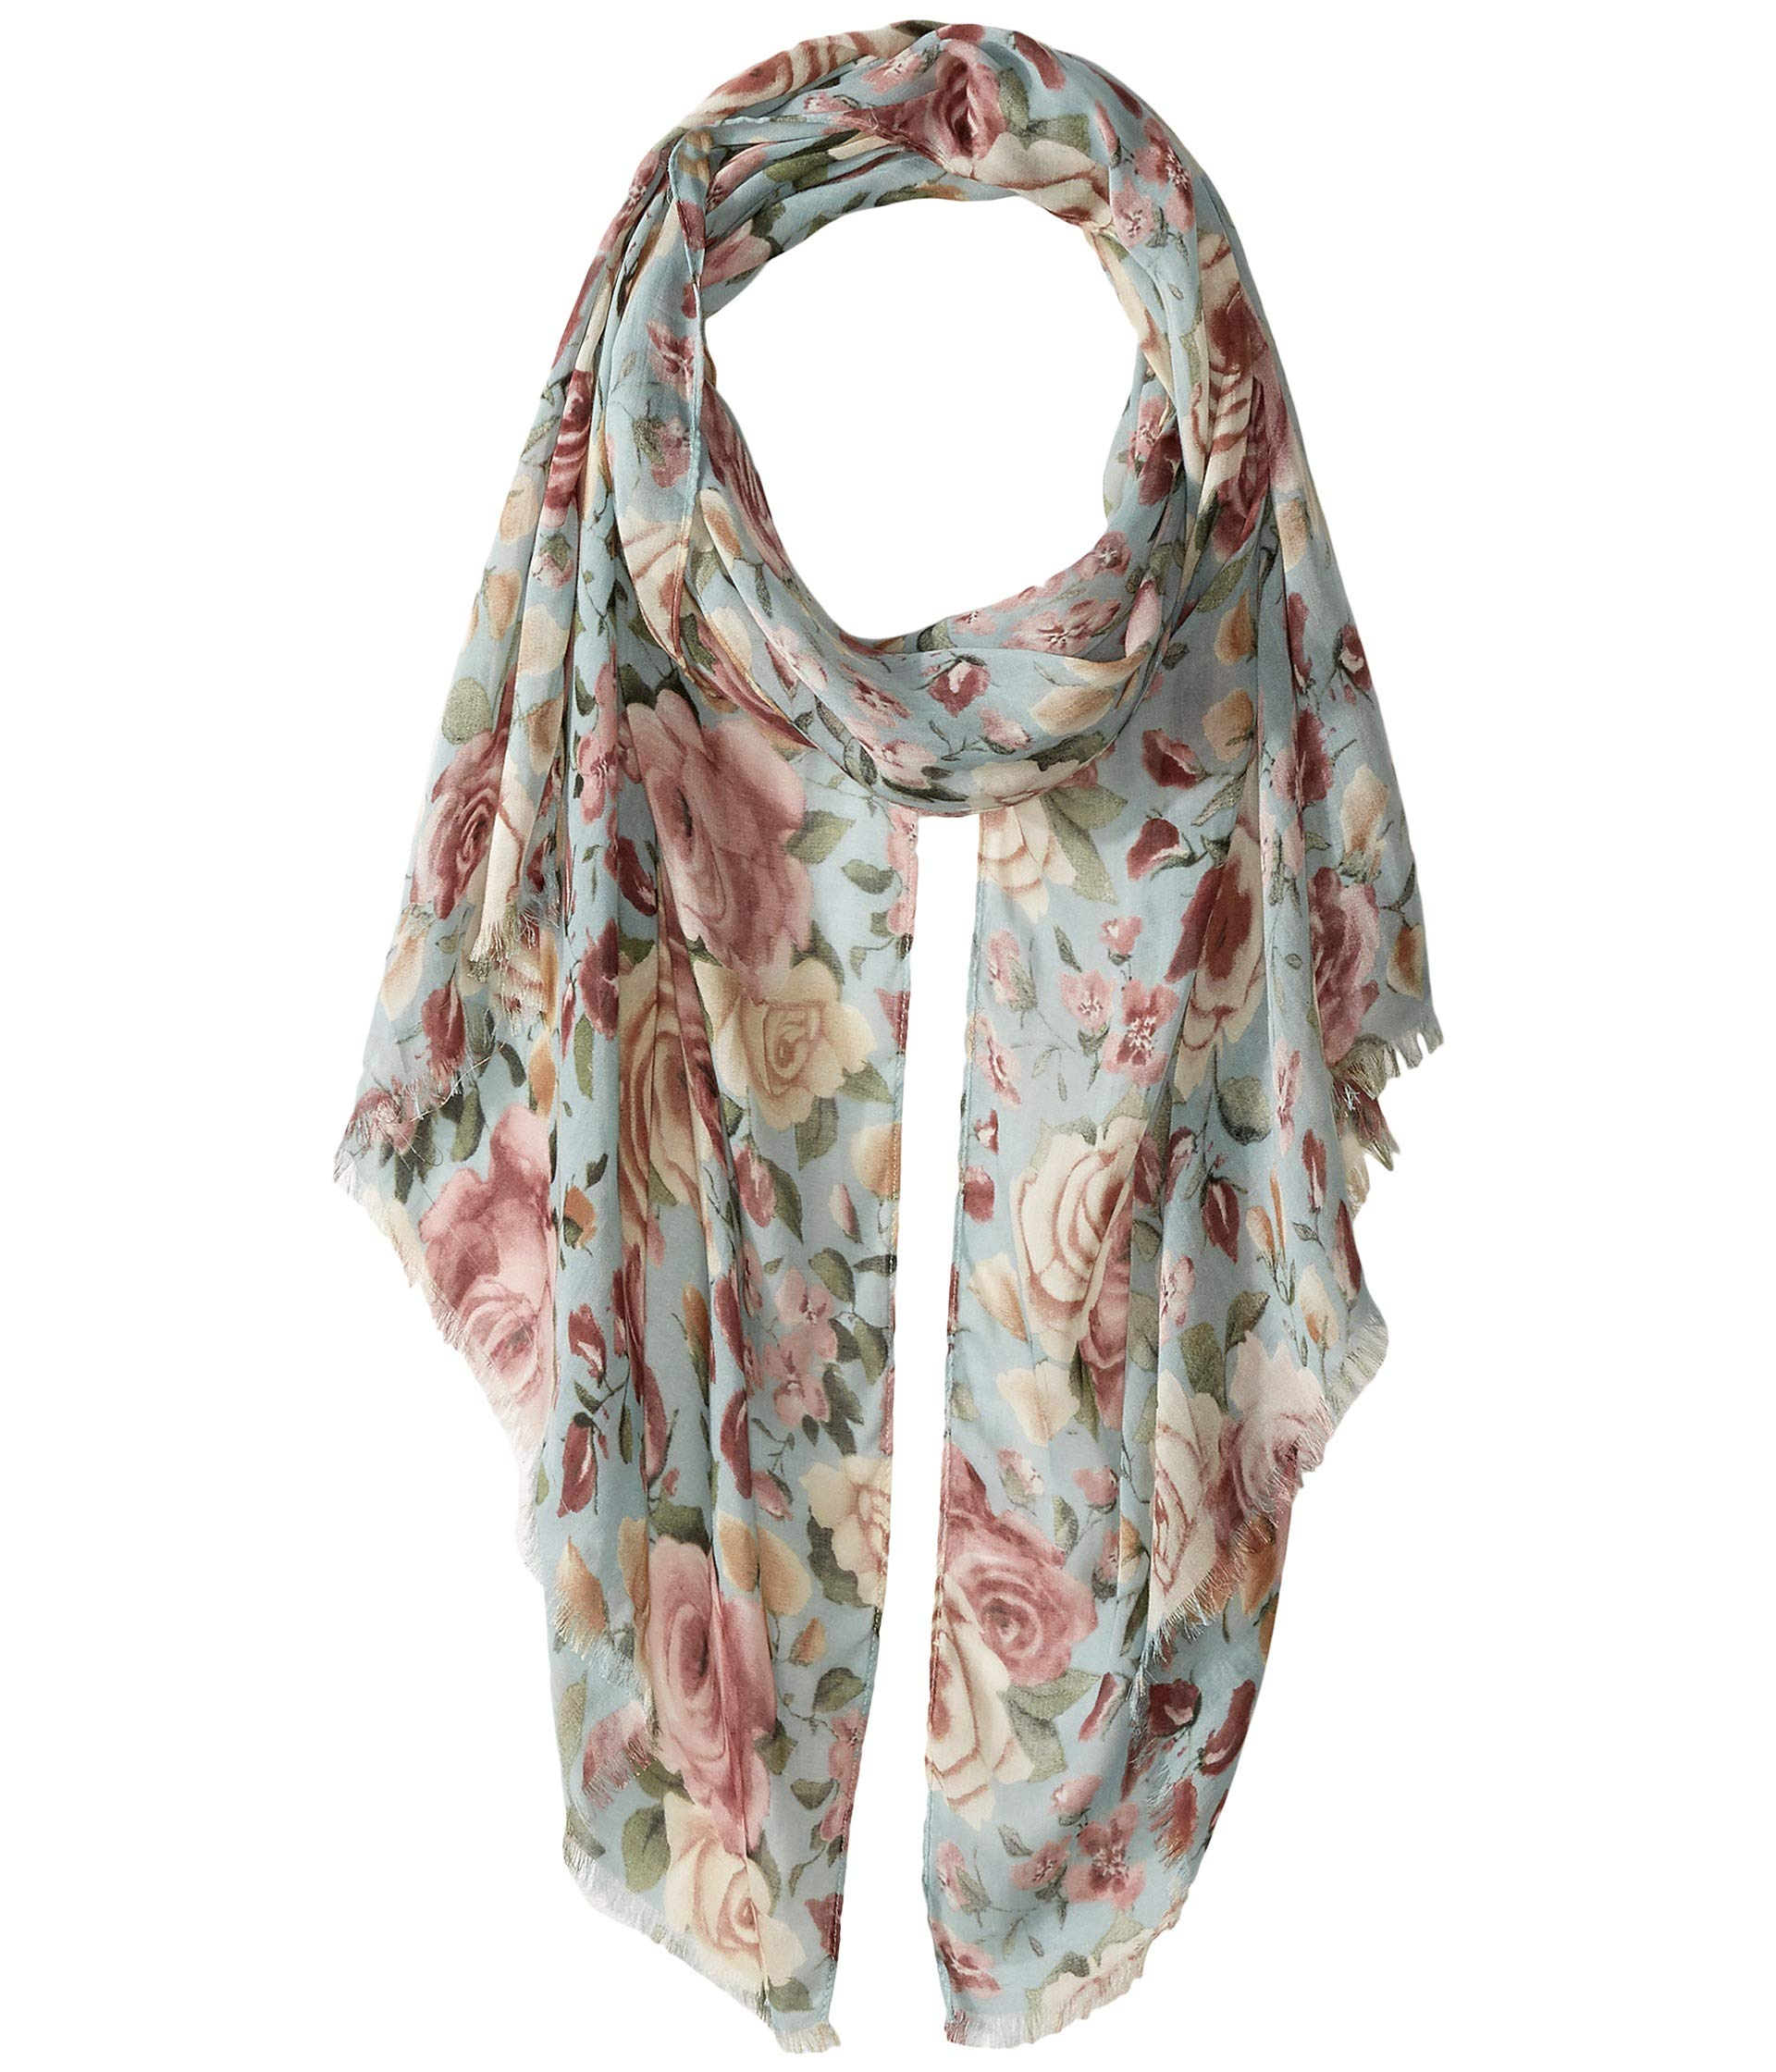 Patricia Nash Women's Scarf Crackled Rose One Size